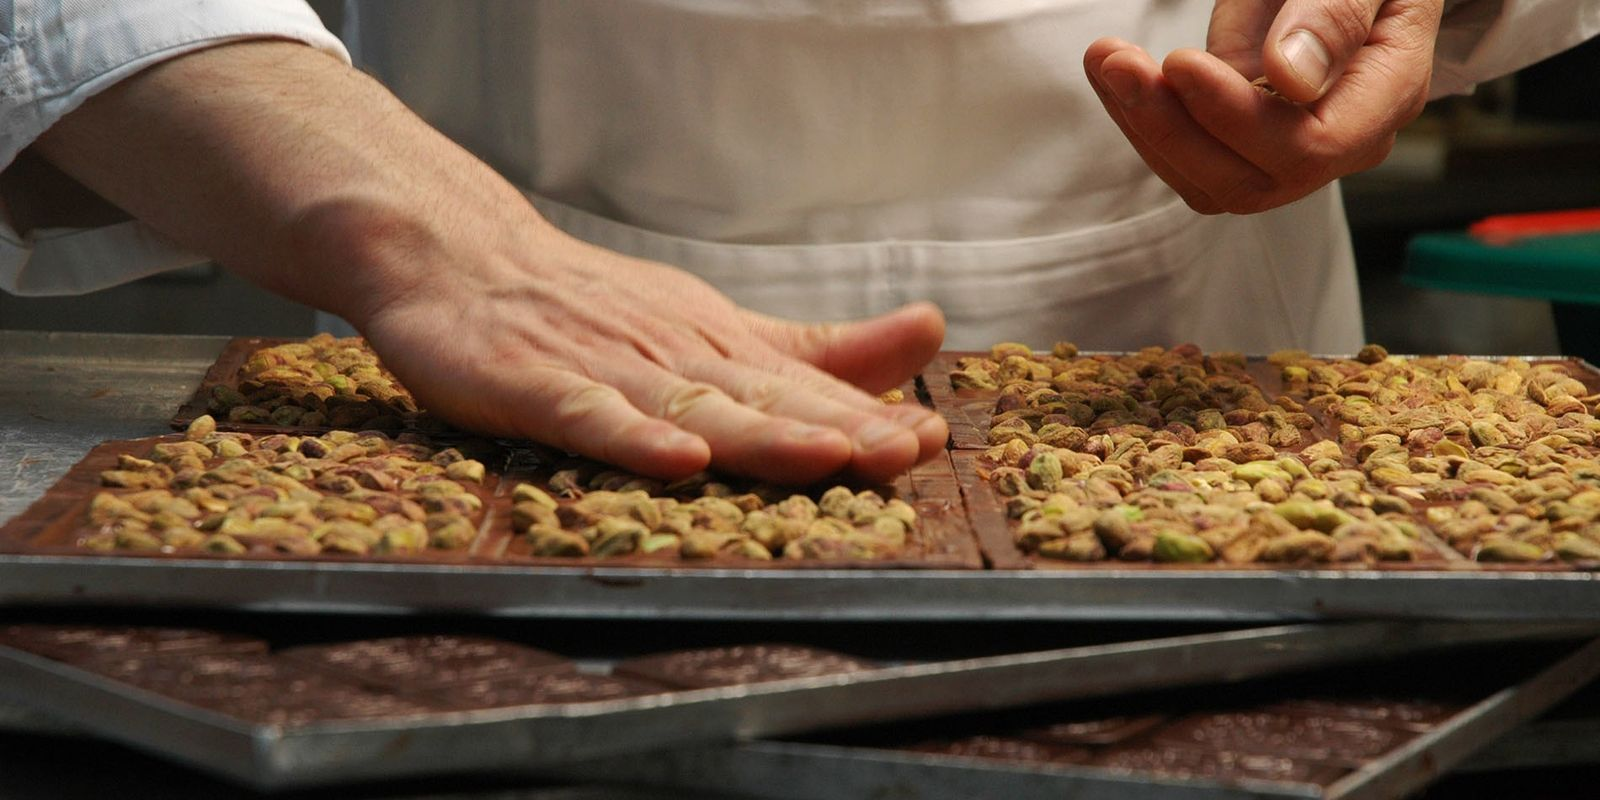 Meet the maker: the Belgian chocolatier crafting confections with an Asian twist